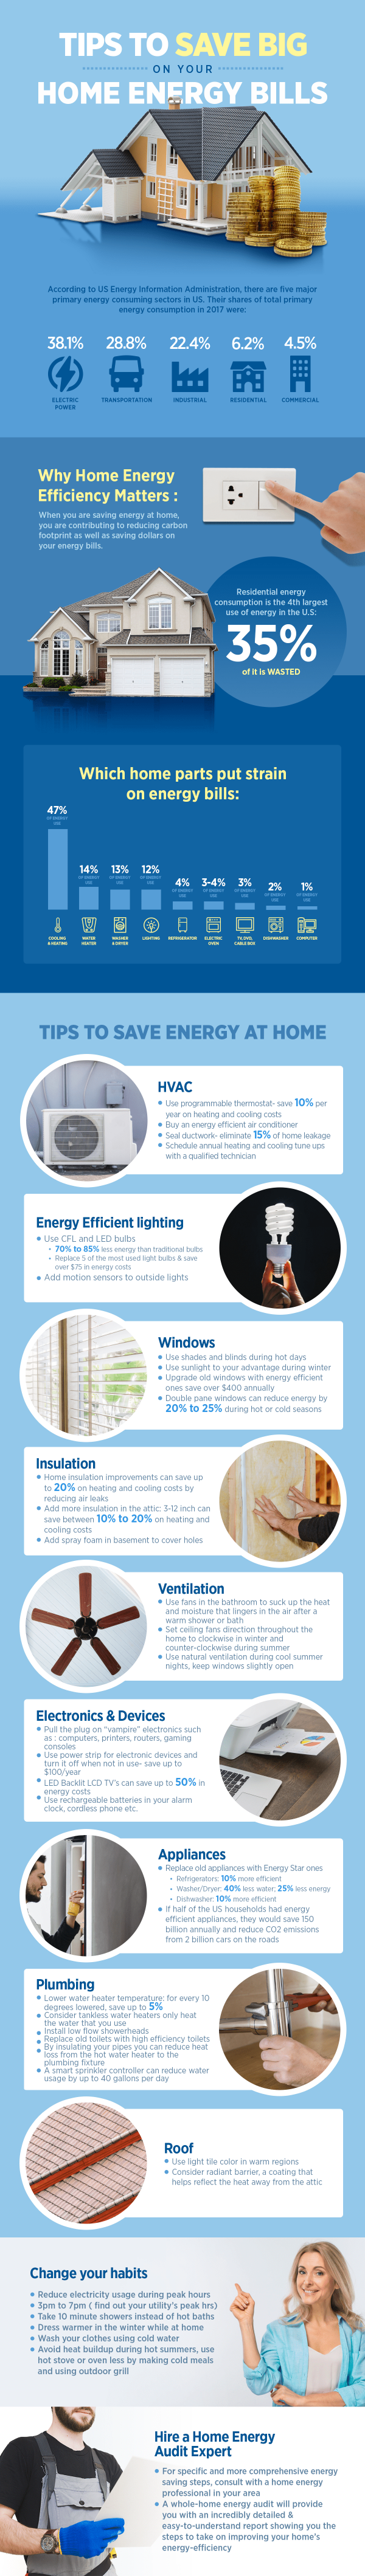 tips to save on energy at home